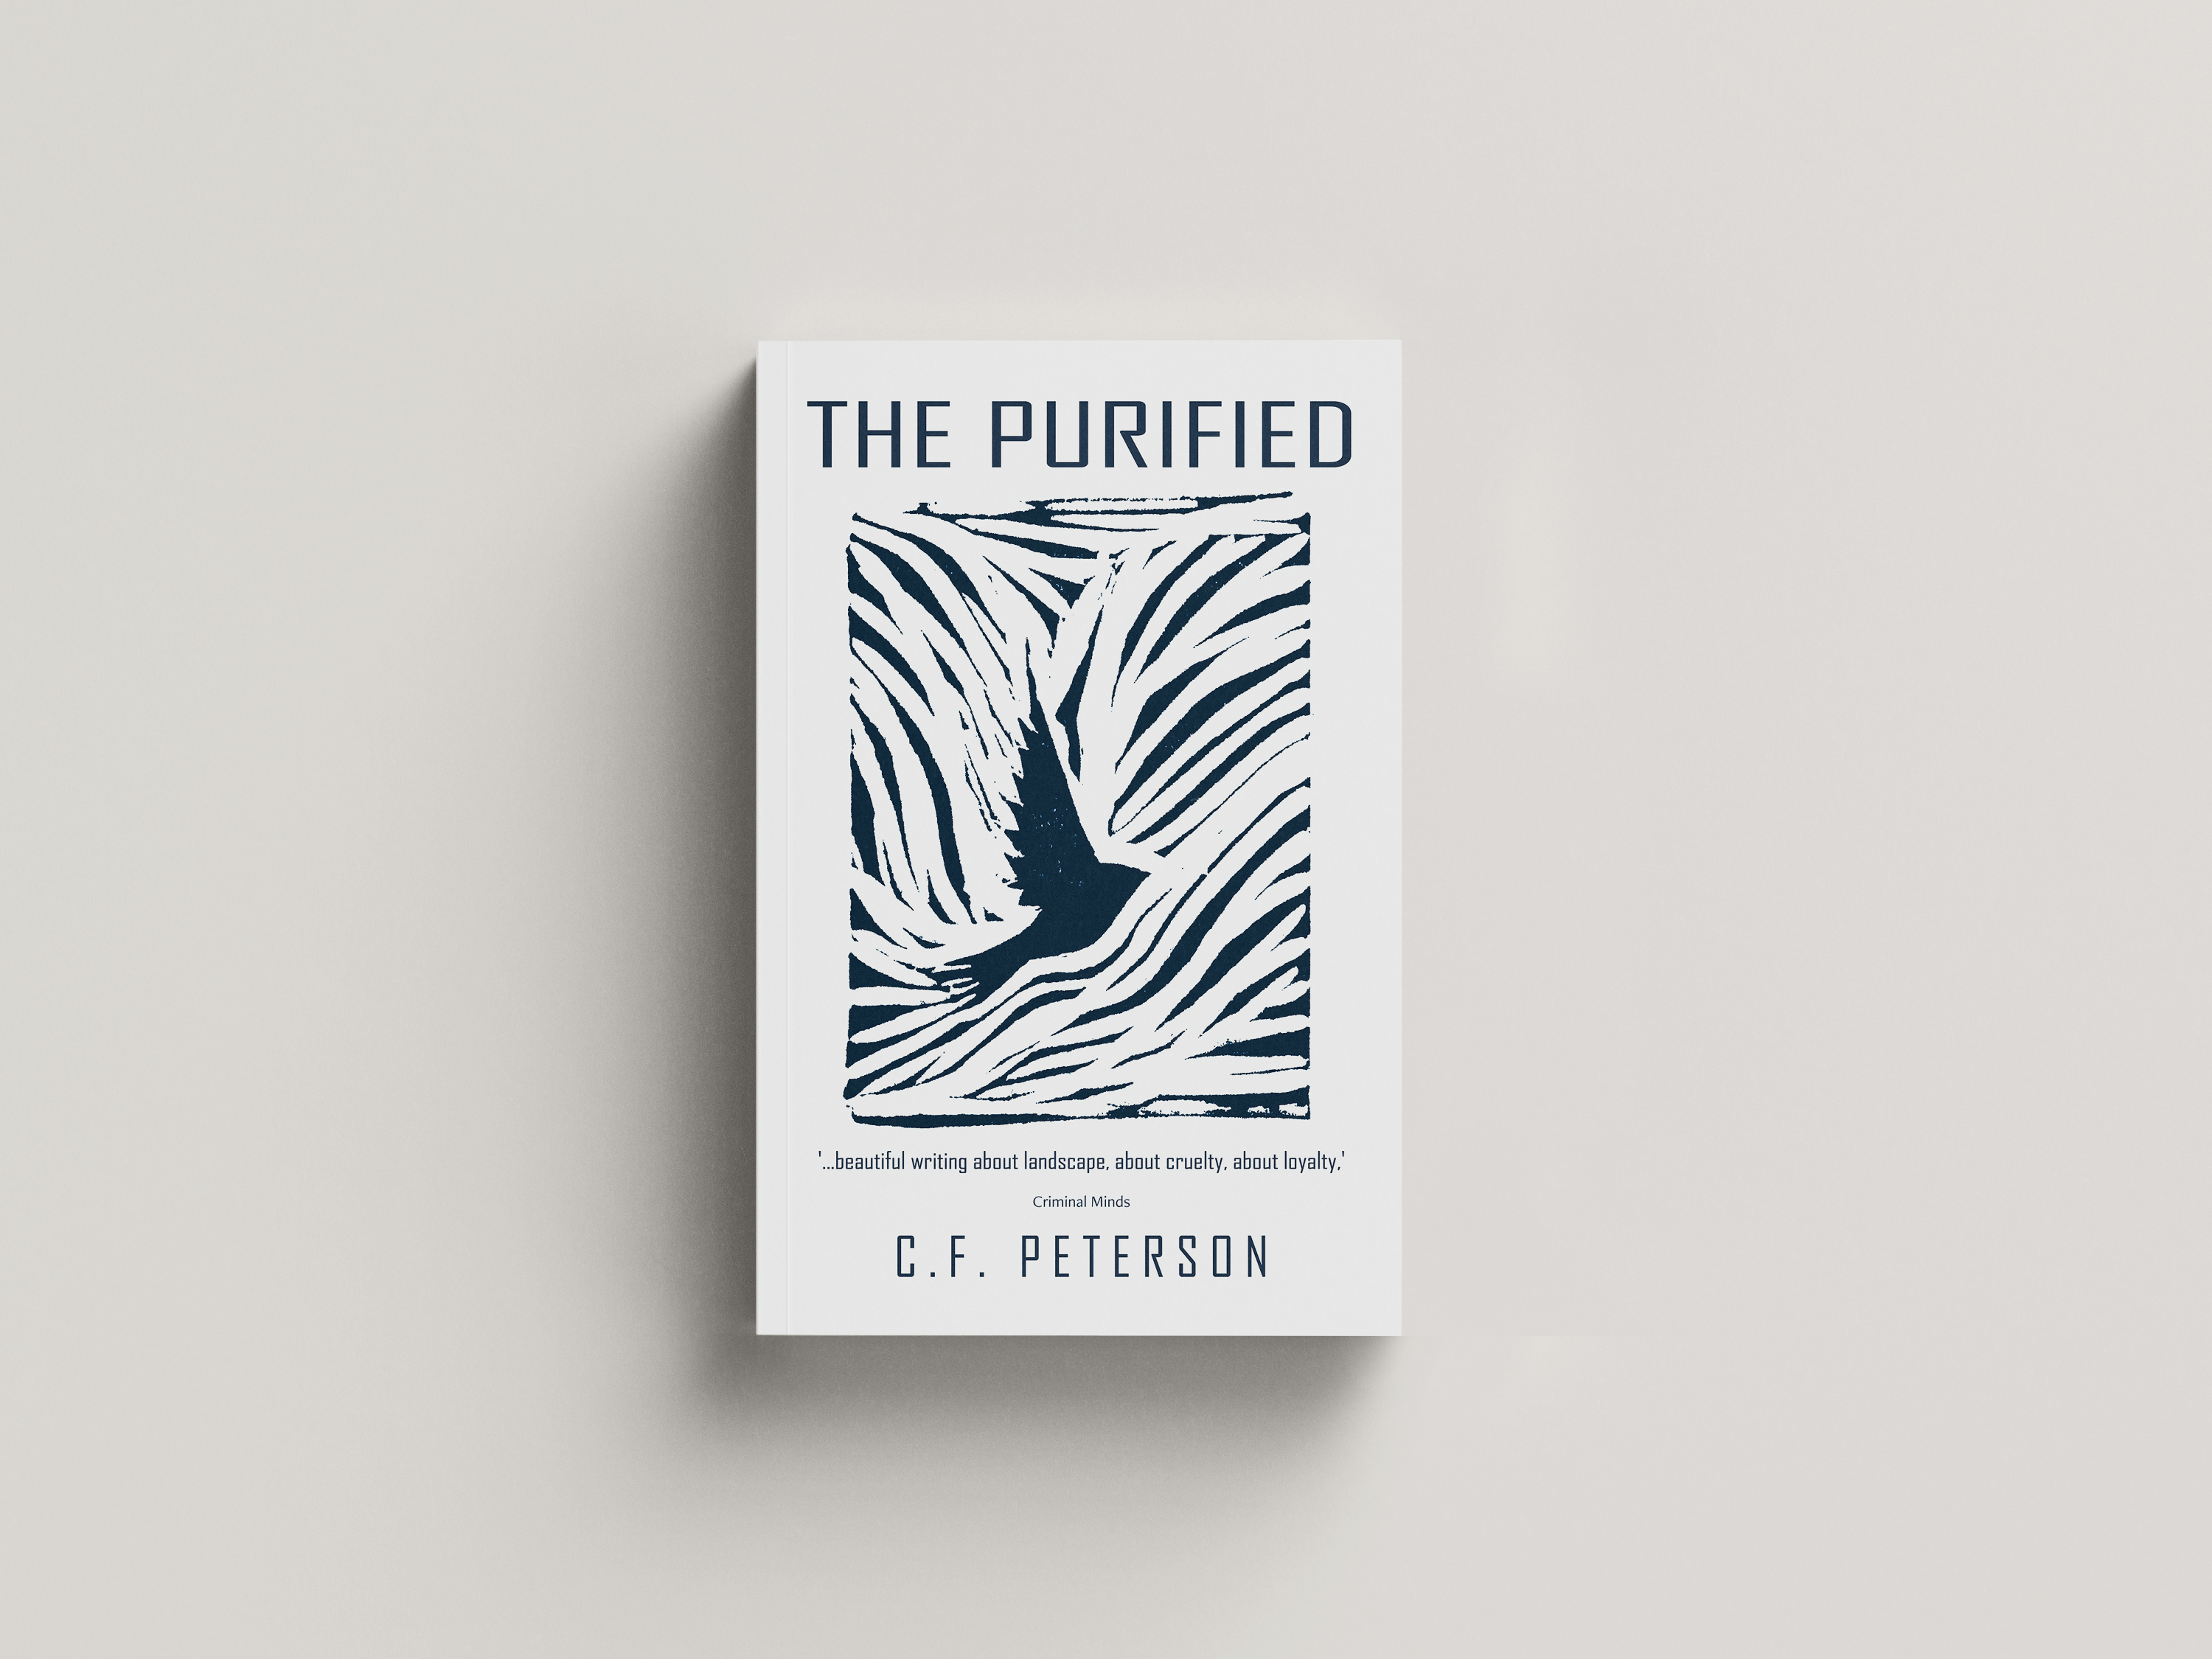 Blue woodcut of a bird flying with text The purified printed above